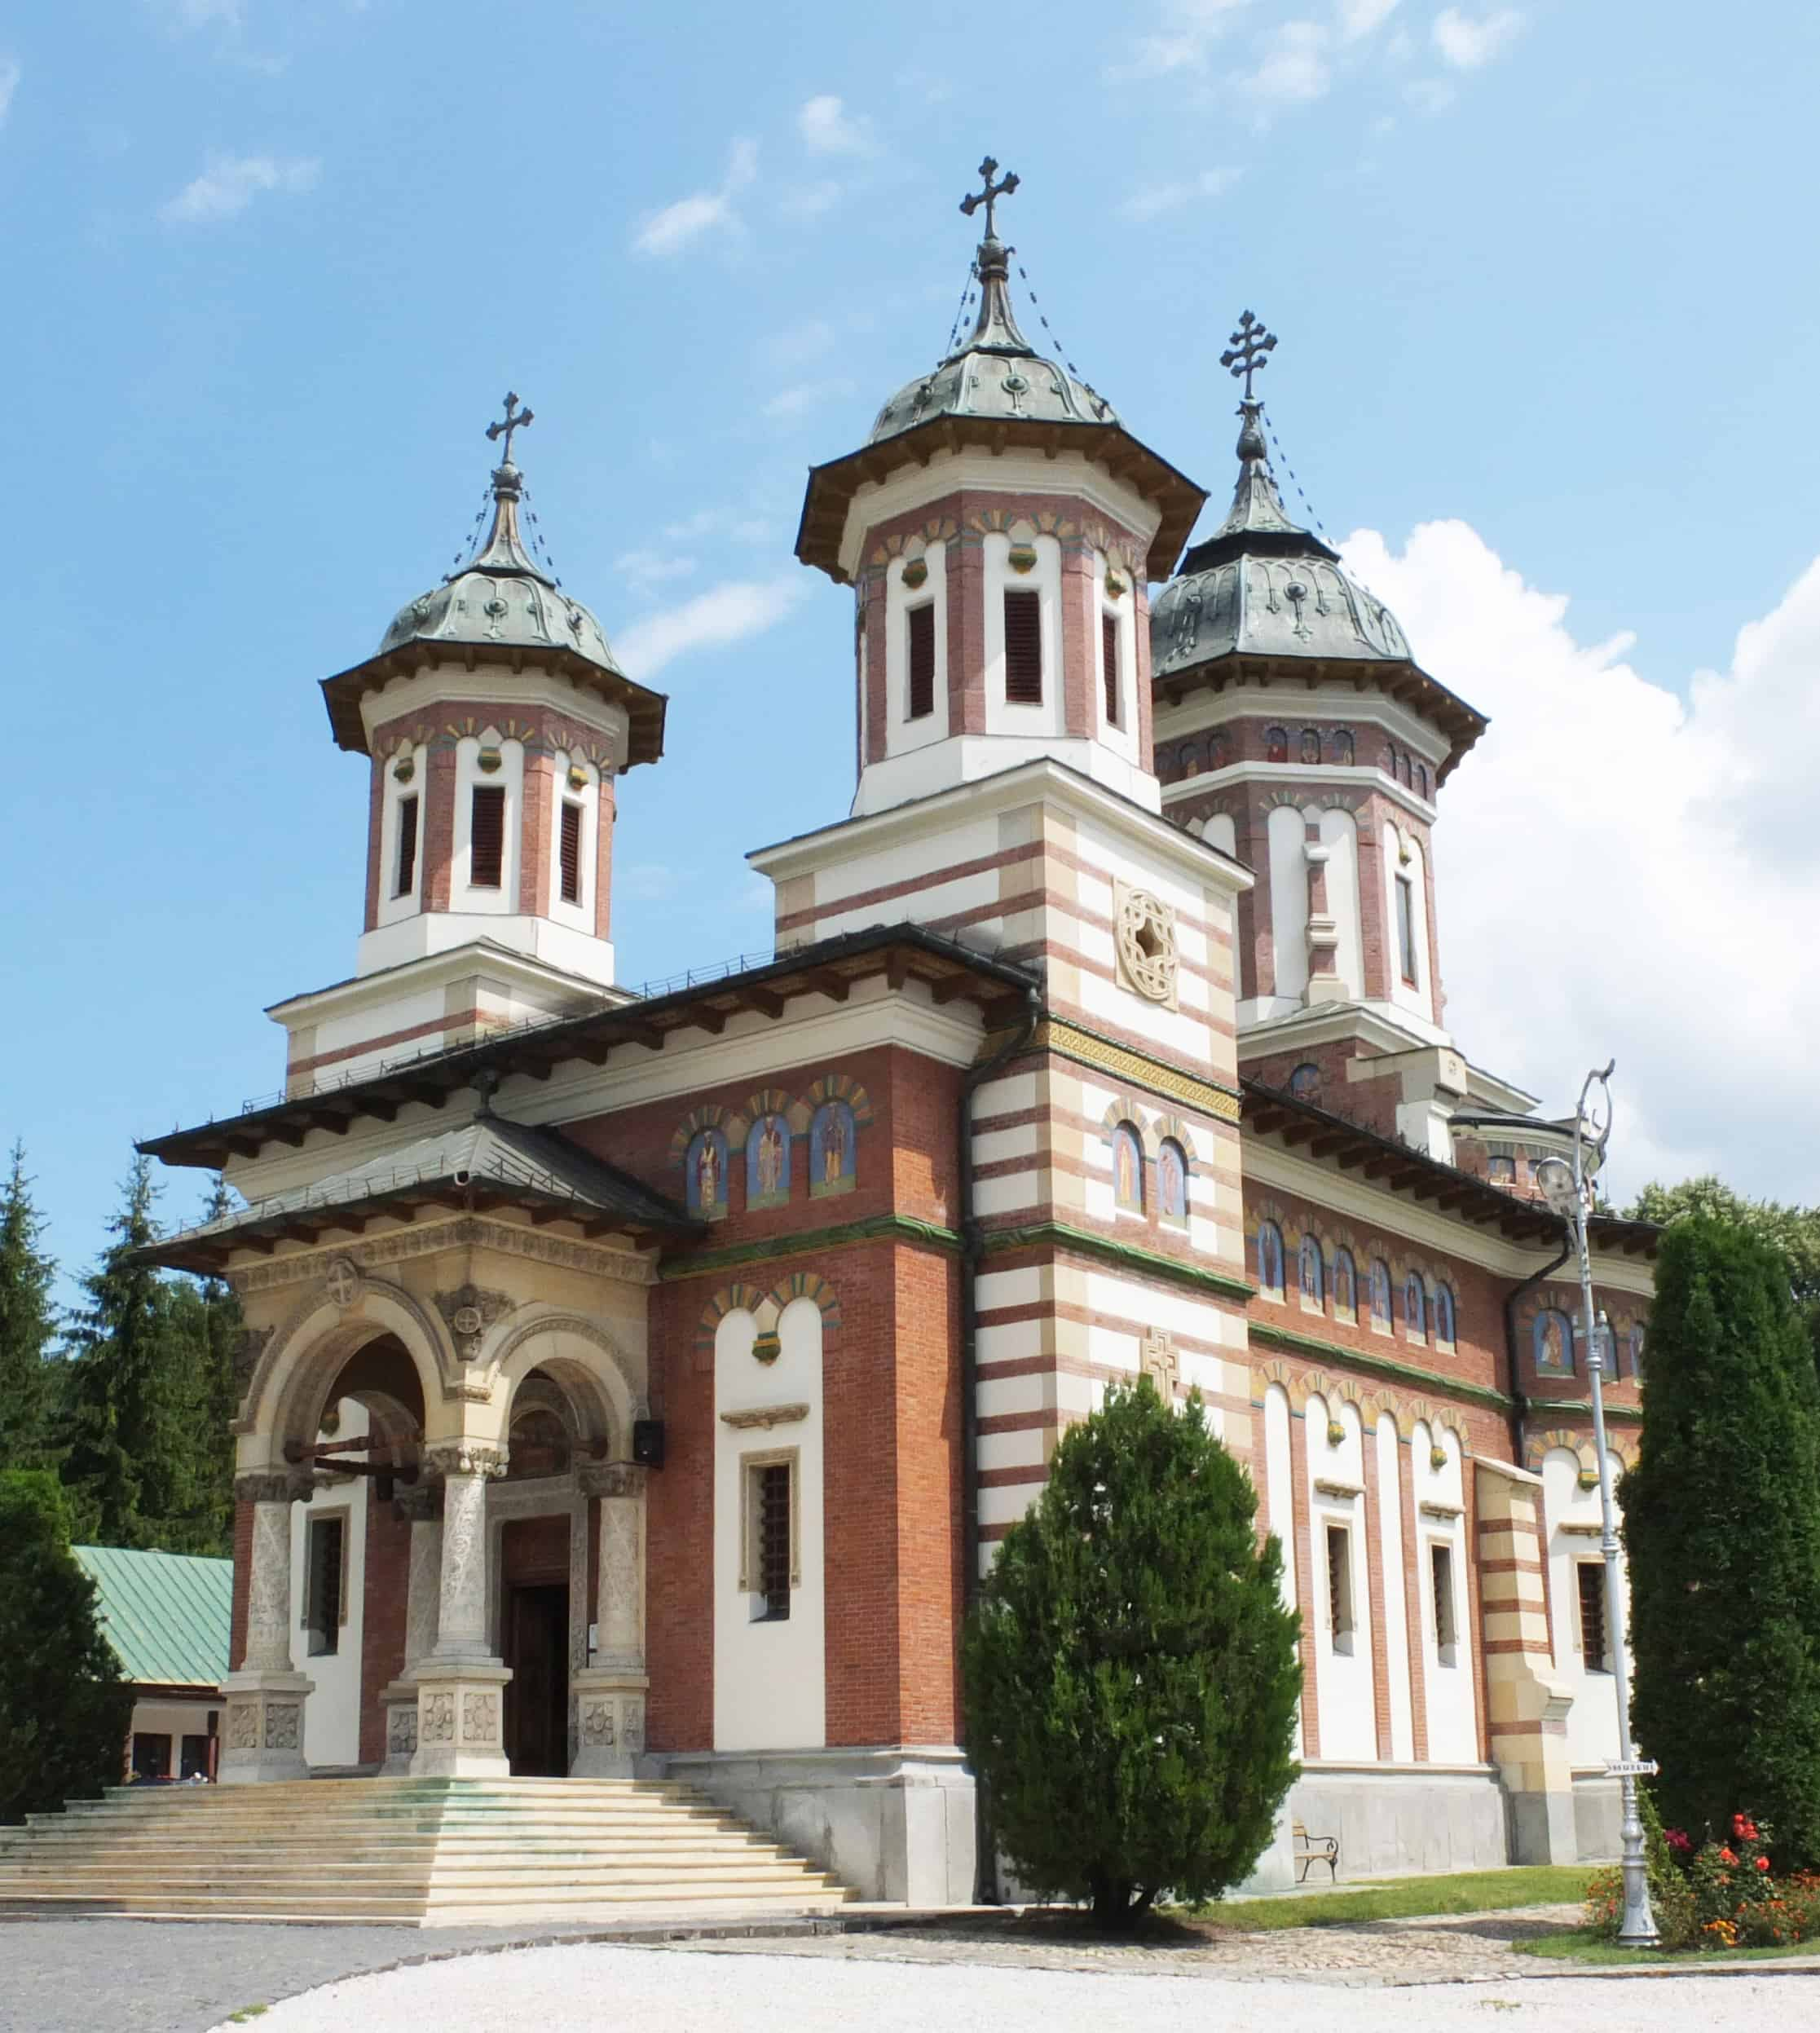 The monastery at Sinaia is one of the prettiest in Romania.